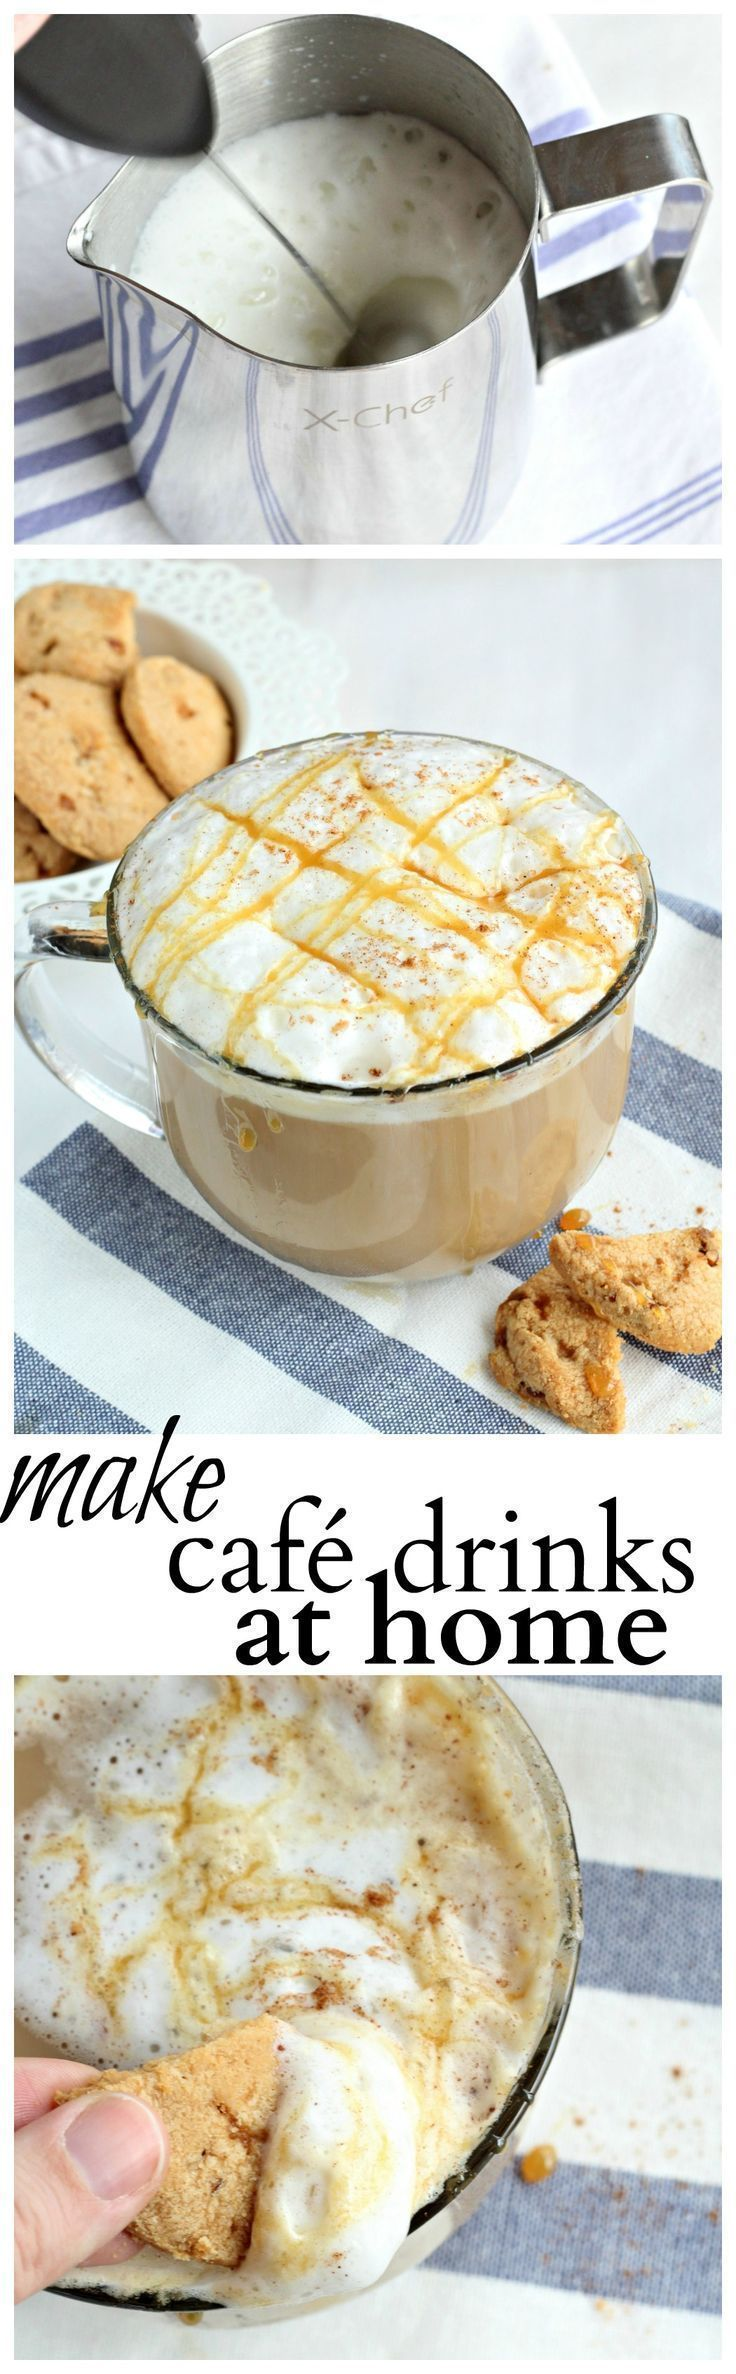 An easy recipe to make cafe drinks at home, for a little indulgence in your day. #MilkFrother #ad